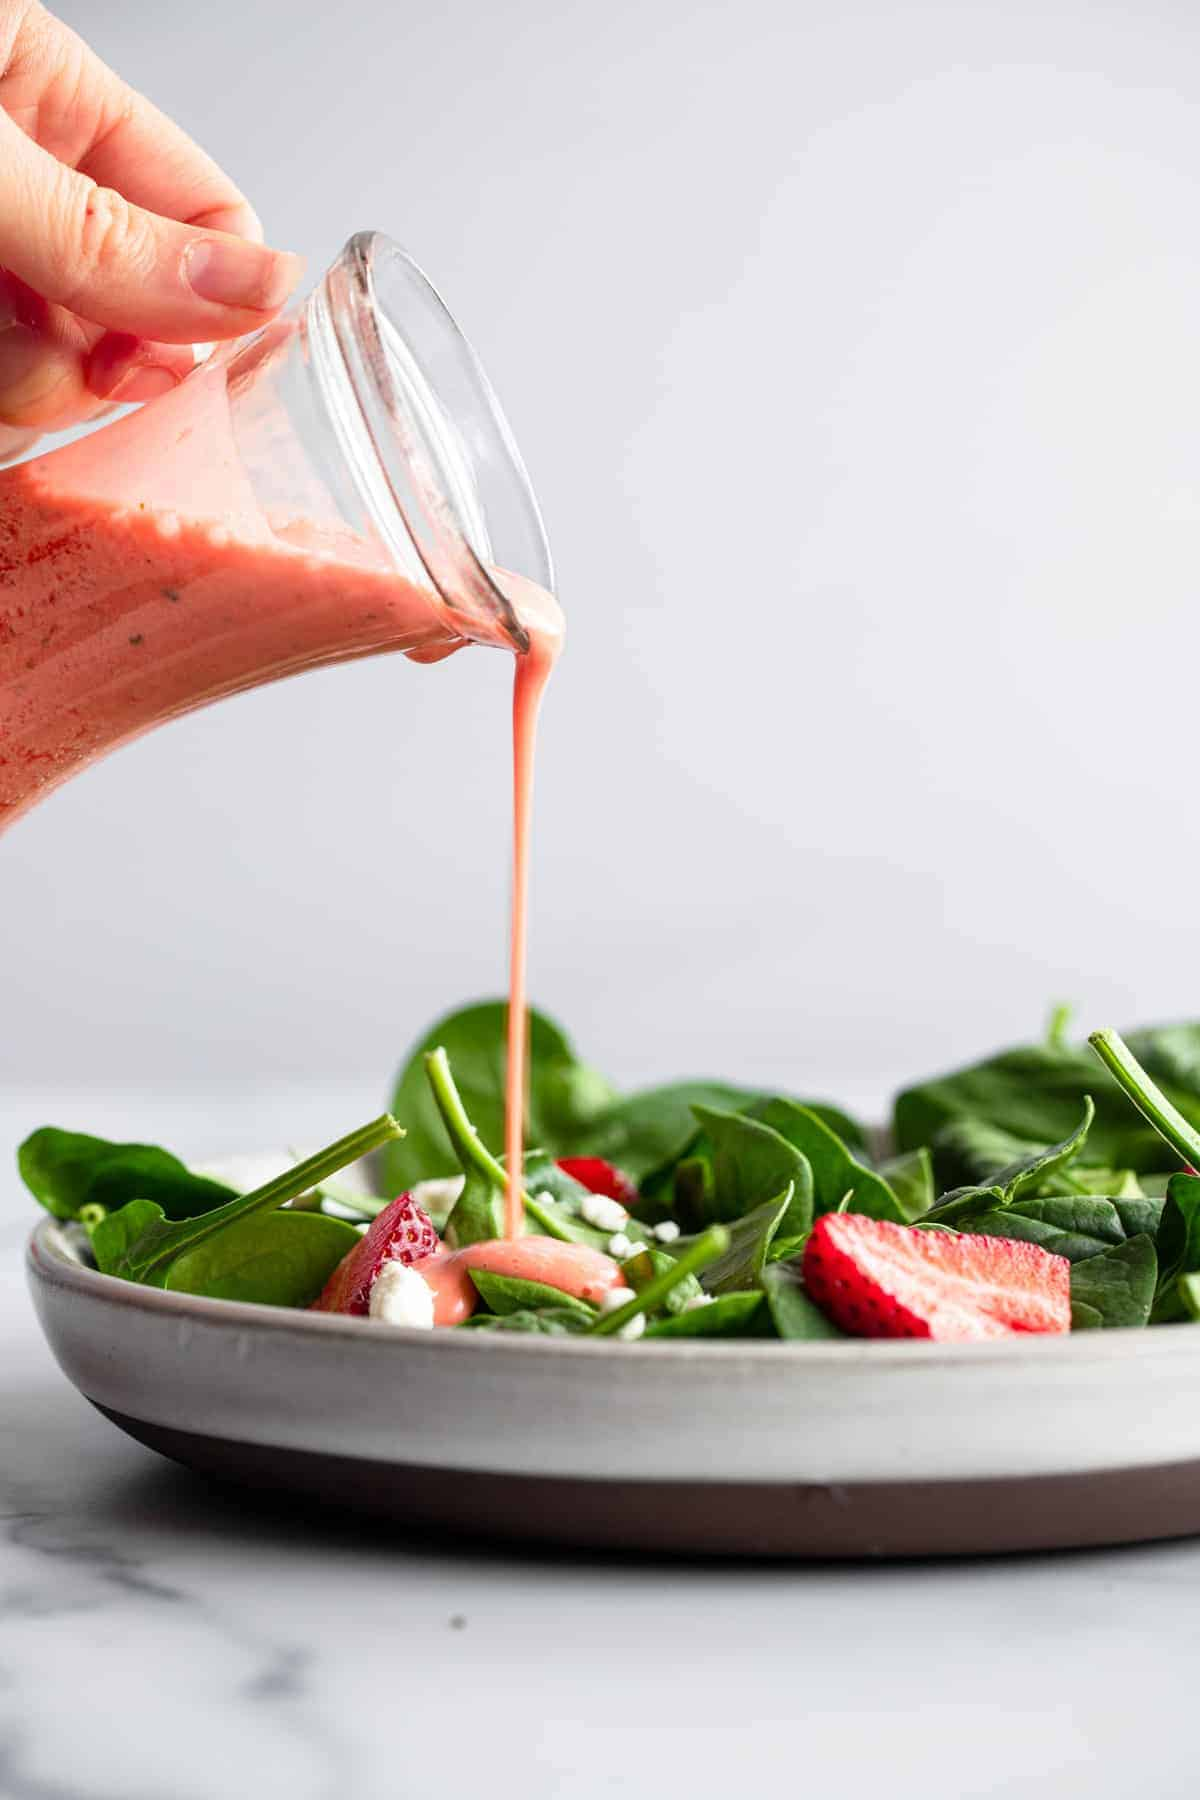 strawberry salad dressing being poured over a salad on a plate